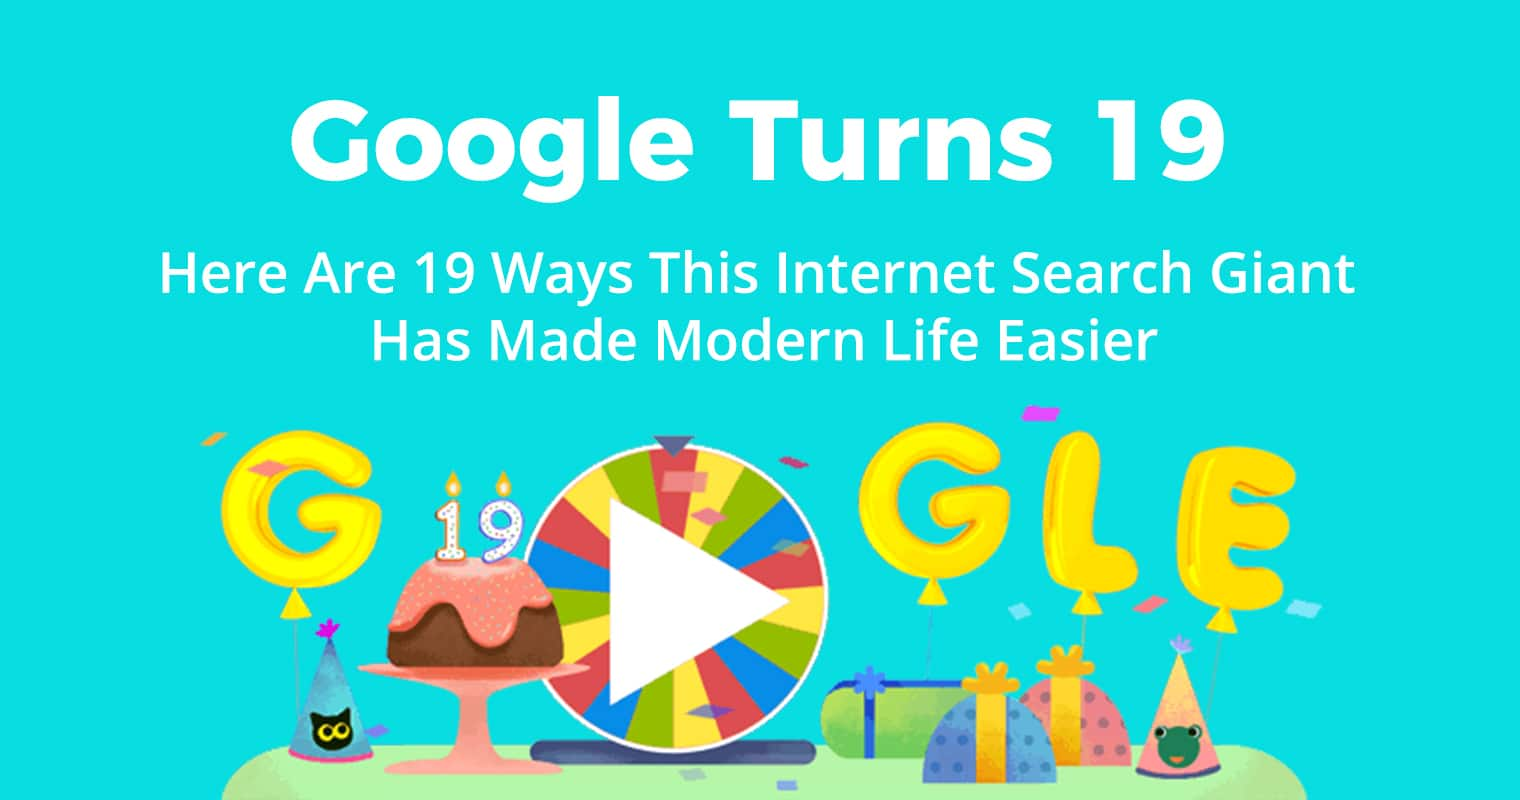 Google Turns 19: Here Are 19 Ways Google Search Makes Life Easier